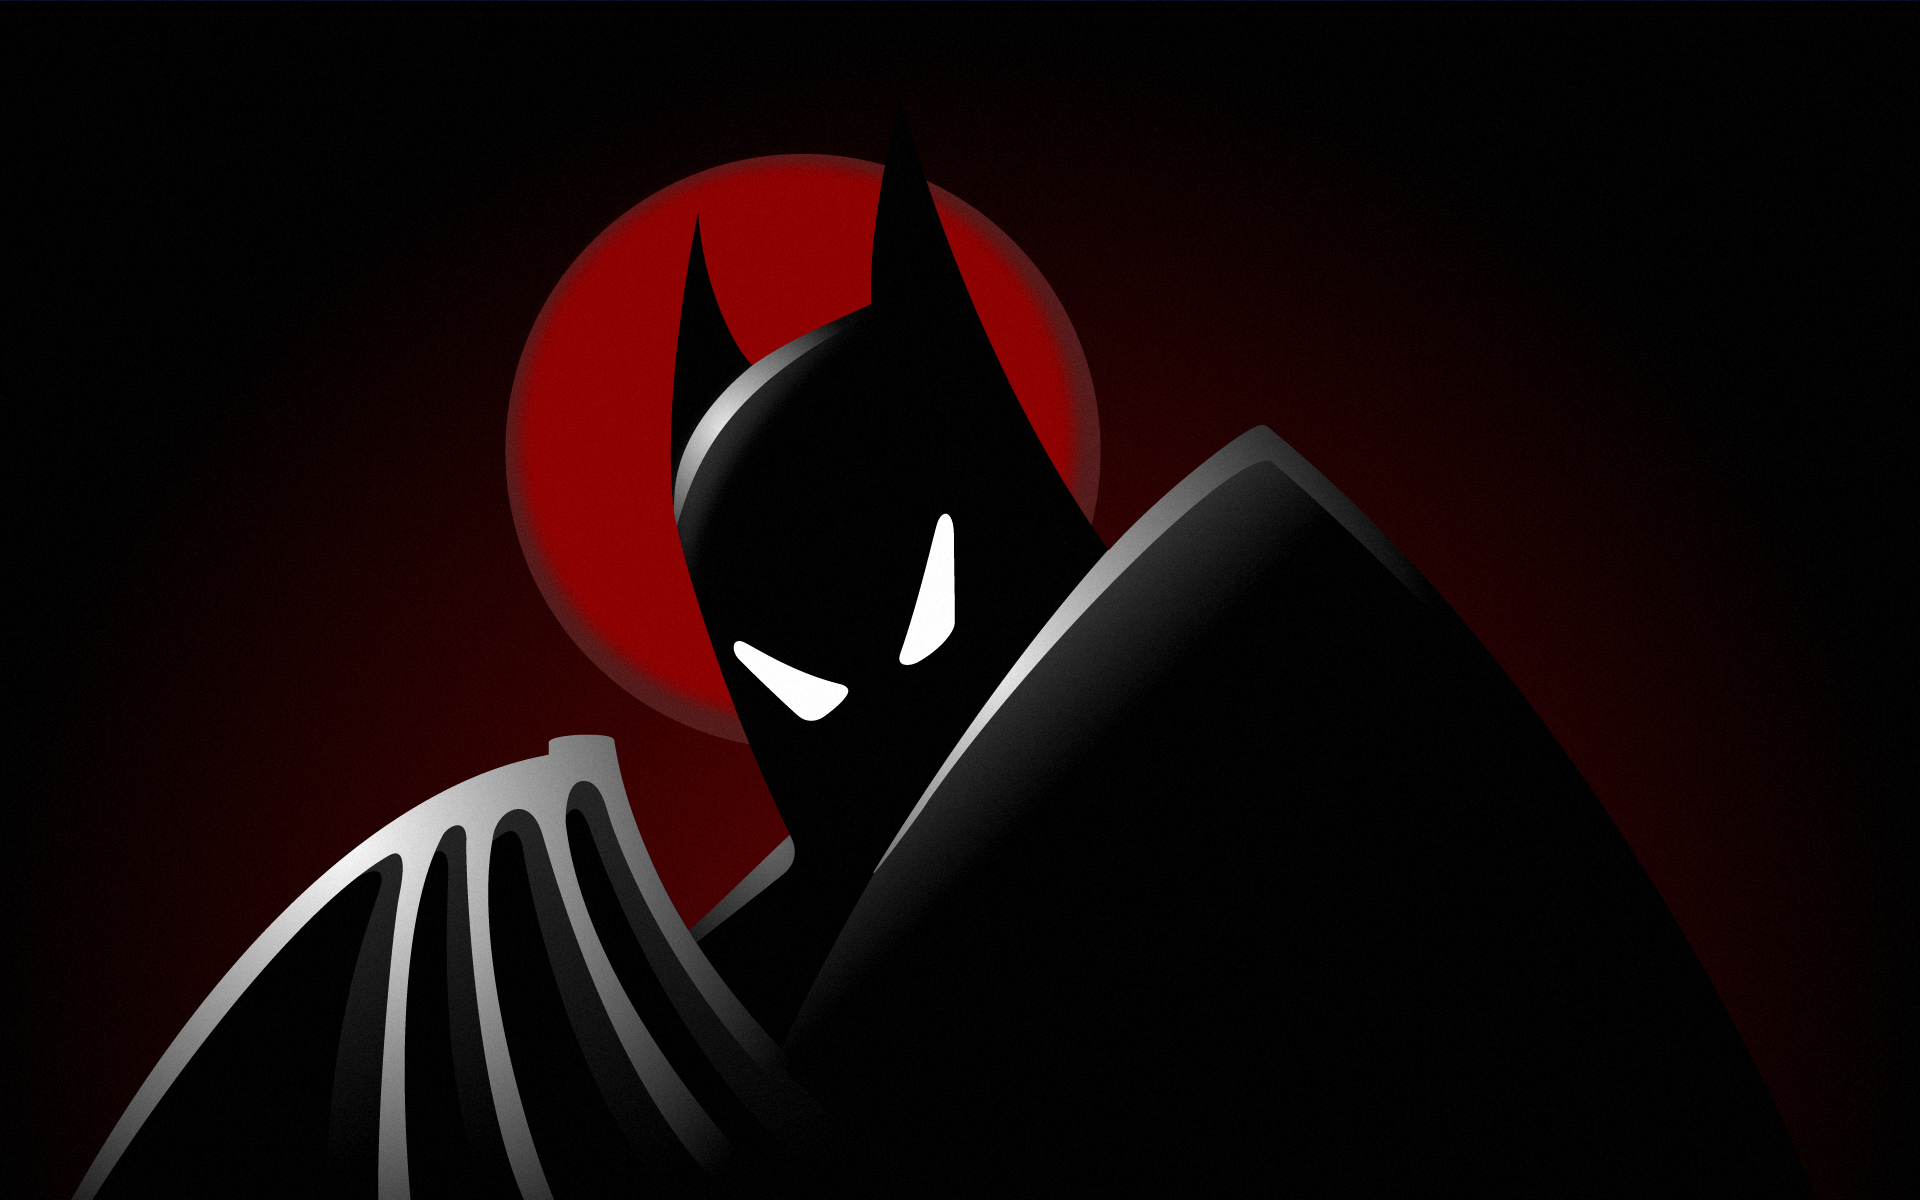 Batman comics hd 1920x1200  imagenes  wallpapers gratis  Dibujos